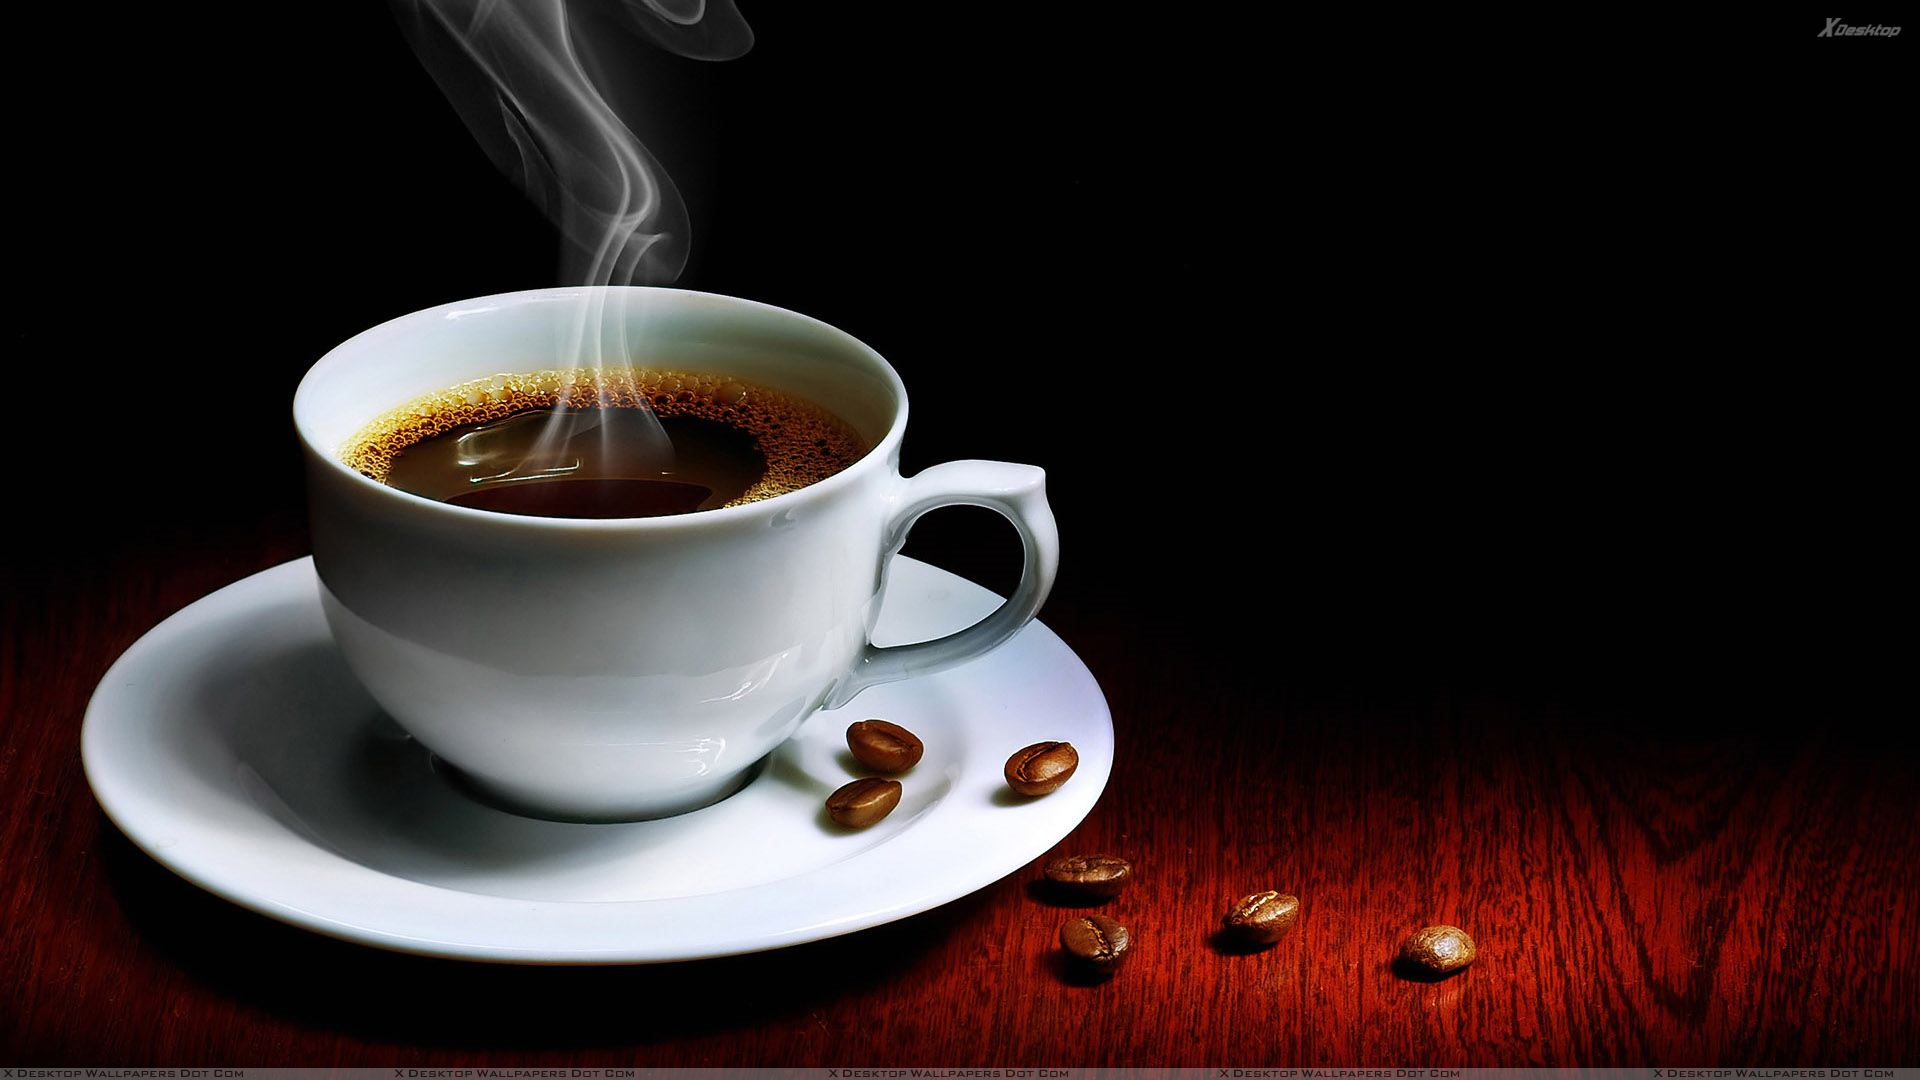 Morning Hot Coffee In White Cup Plate Wallpaper HD Wide Wallpaper for Widescreen